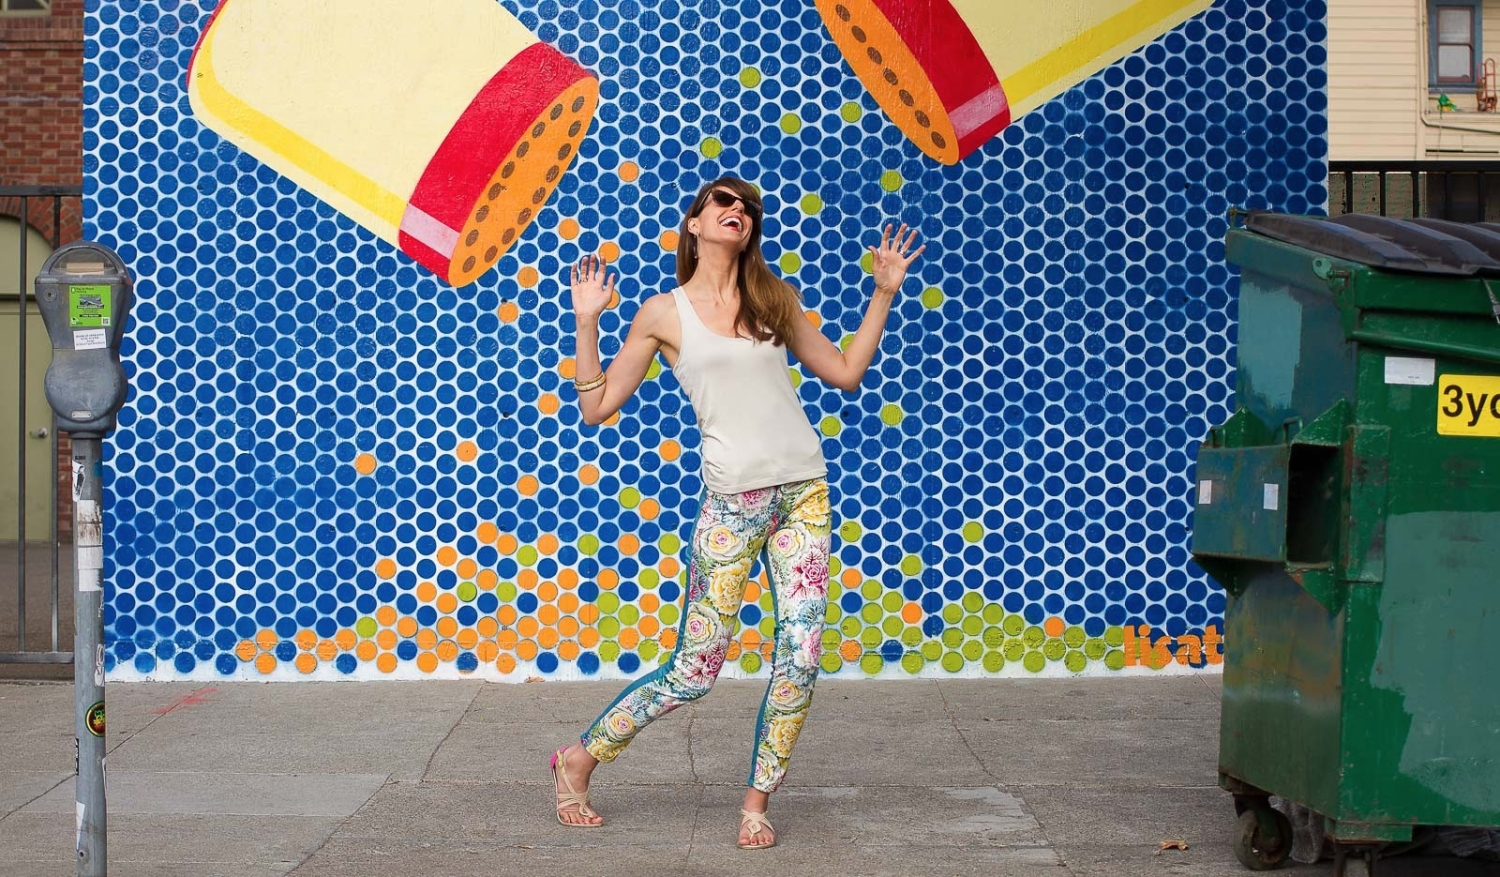 Betabrand Women's 2-face britches